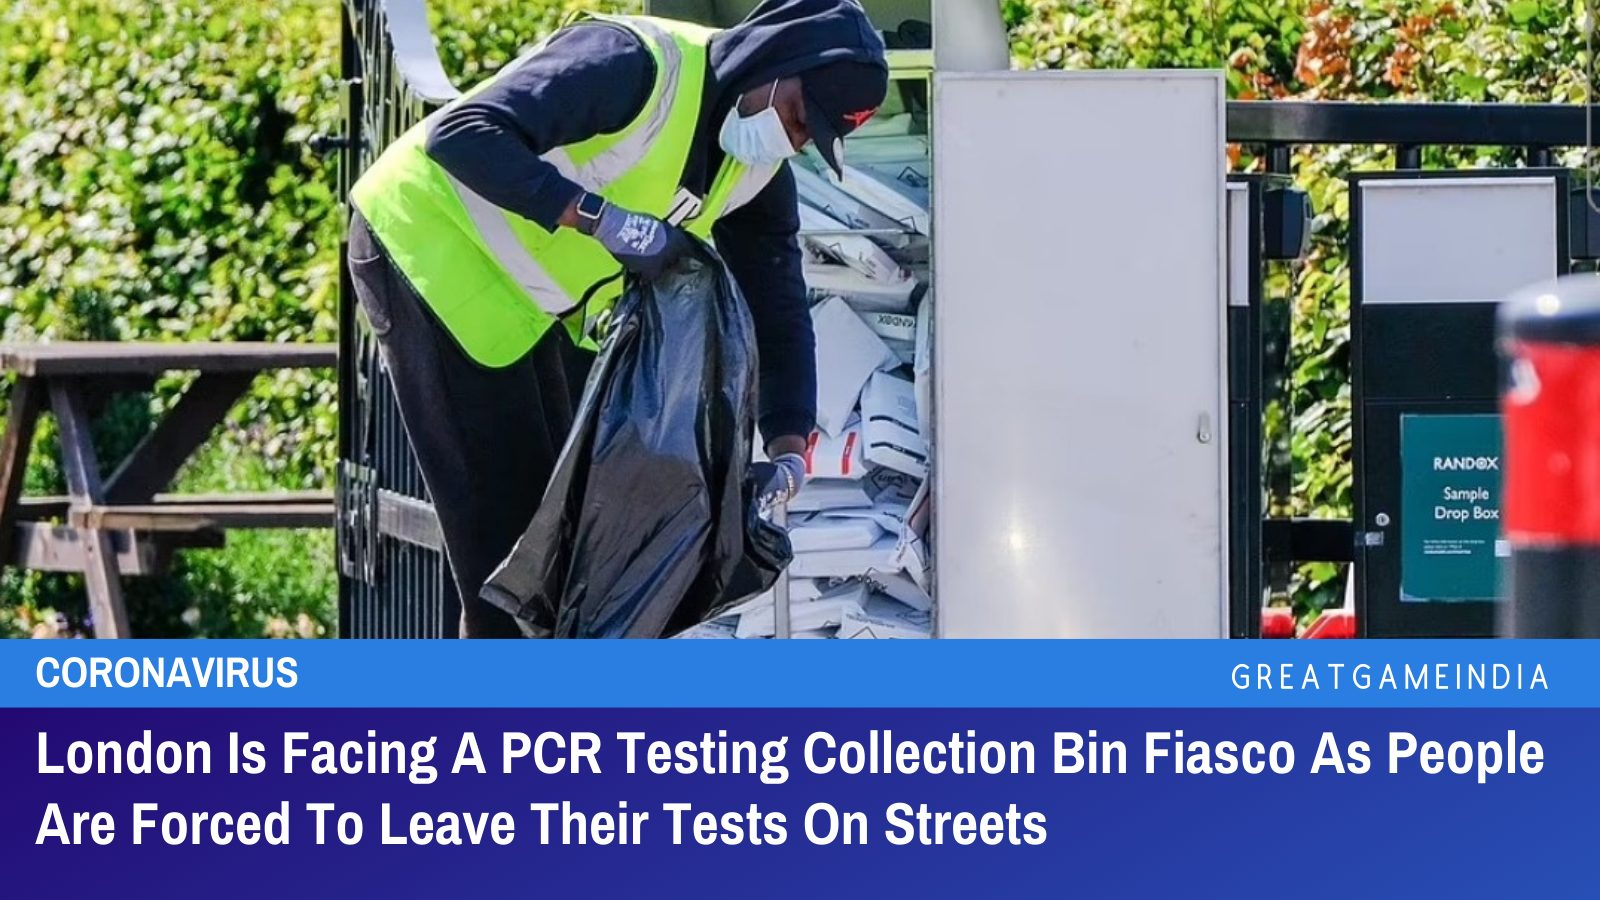 London Is Facing A PCR Testing Collection Bin Fiasco As People Are Forced To Leave Their Tests On Streets